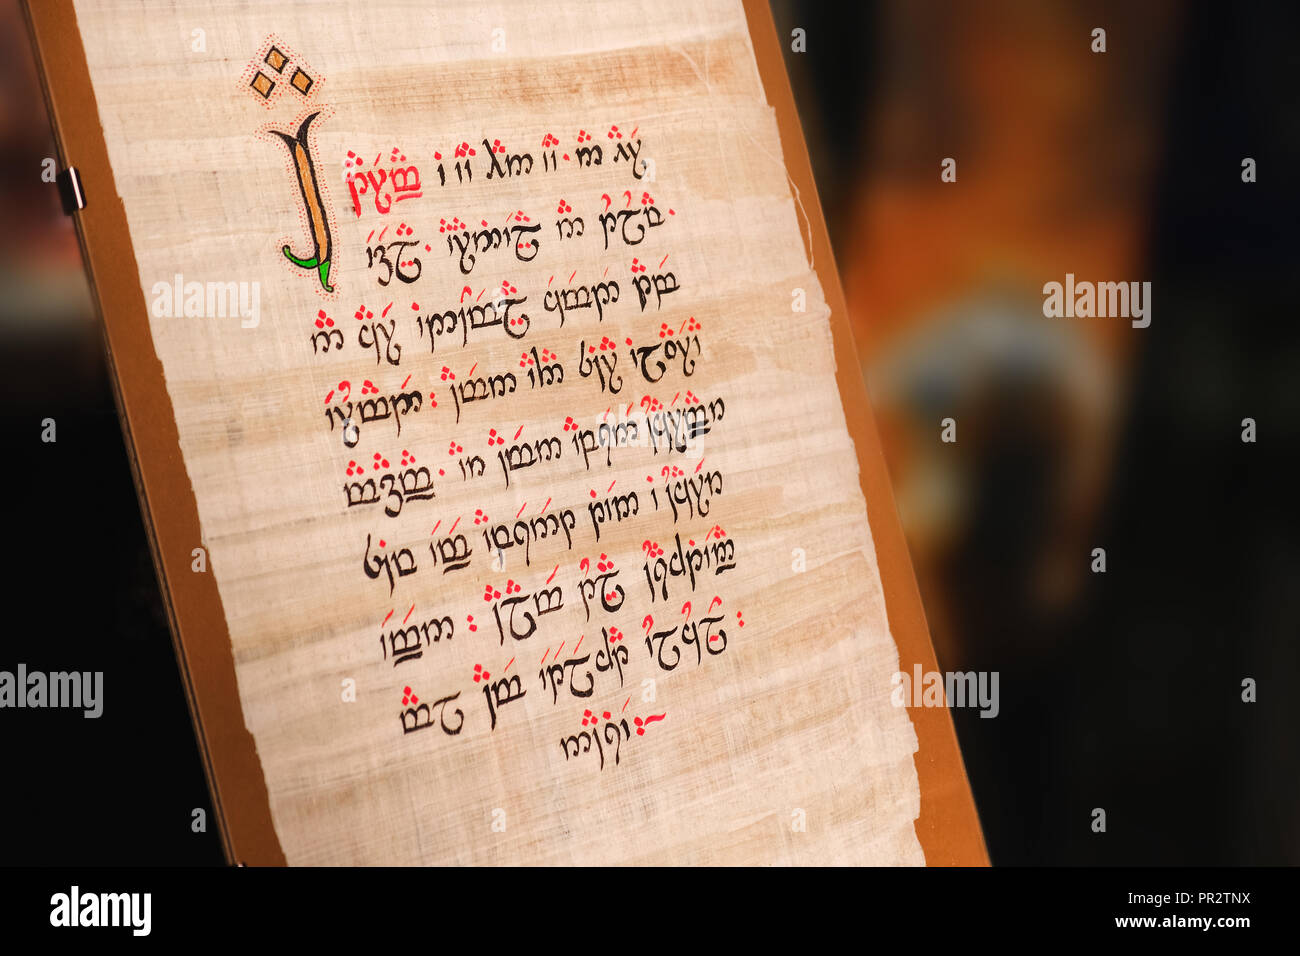 elvish manuscript text written on silk parchment created by Tolkien - Stock Image